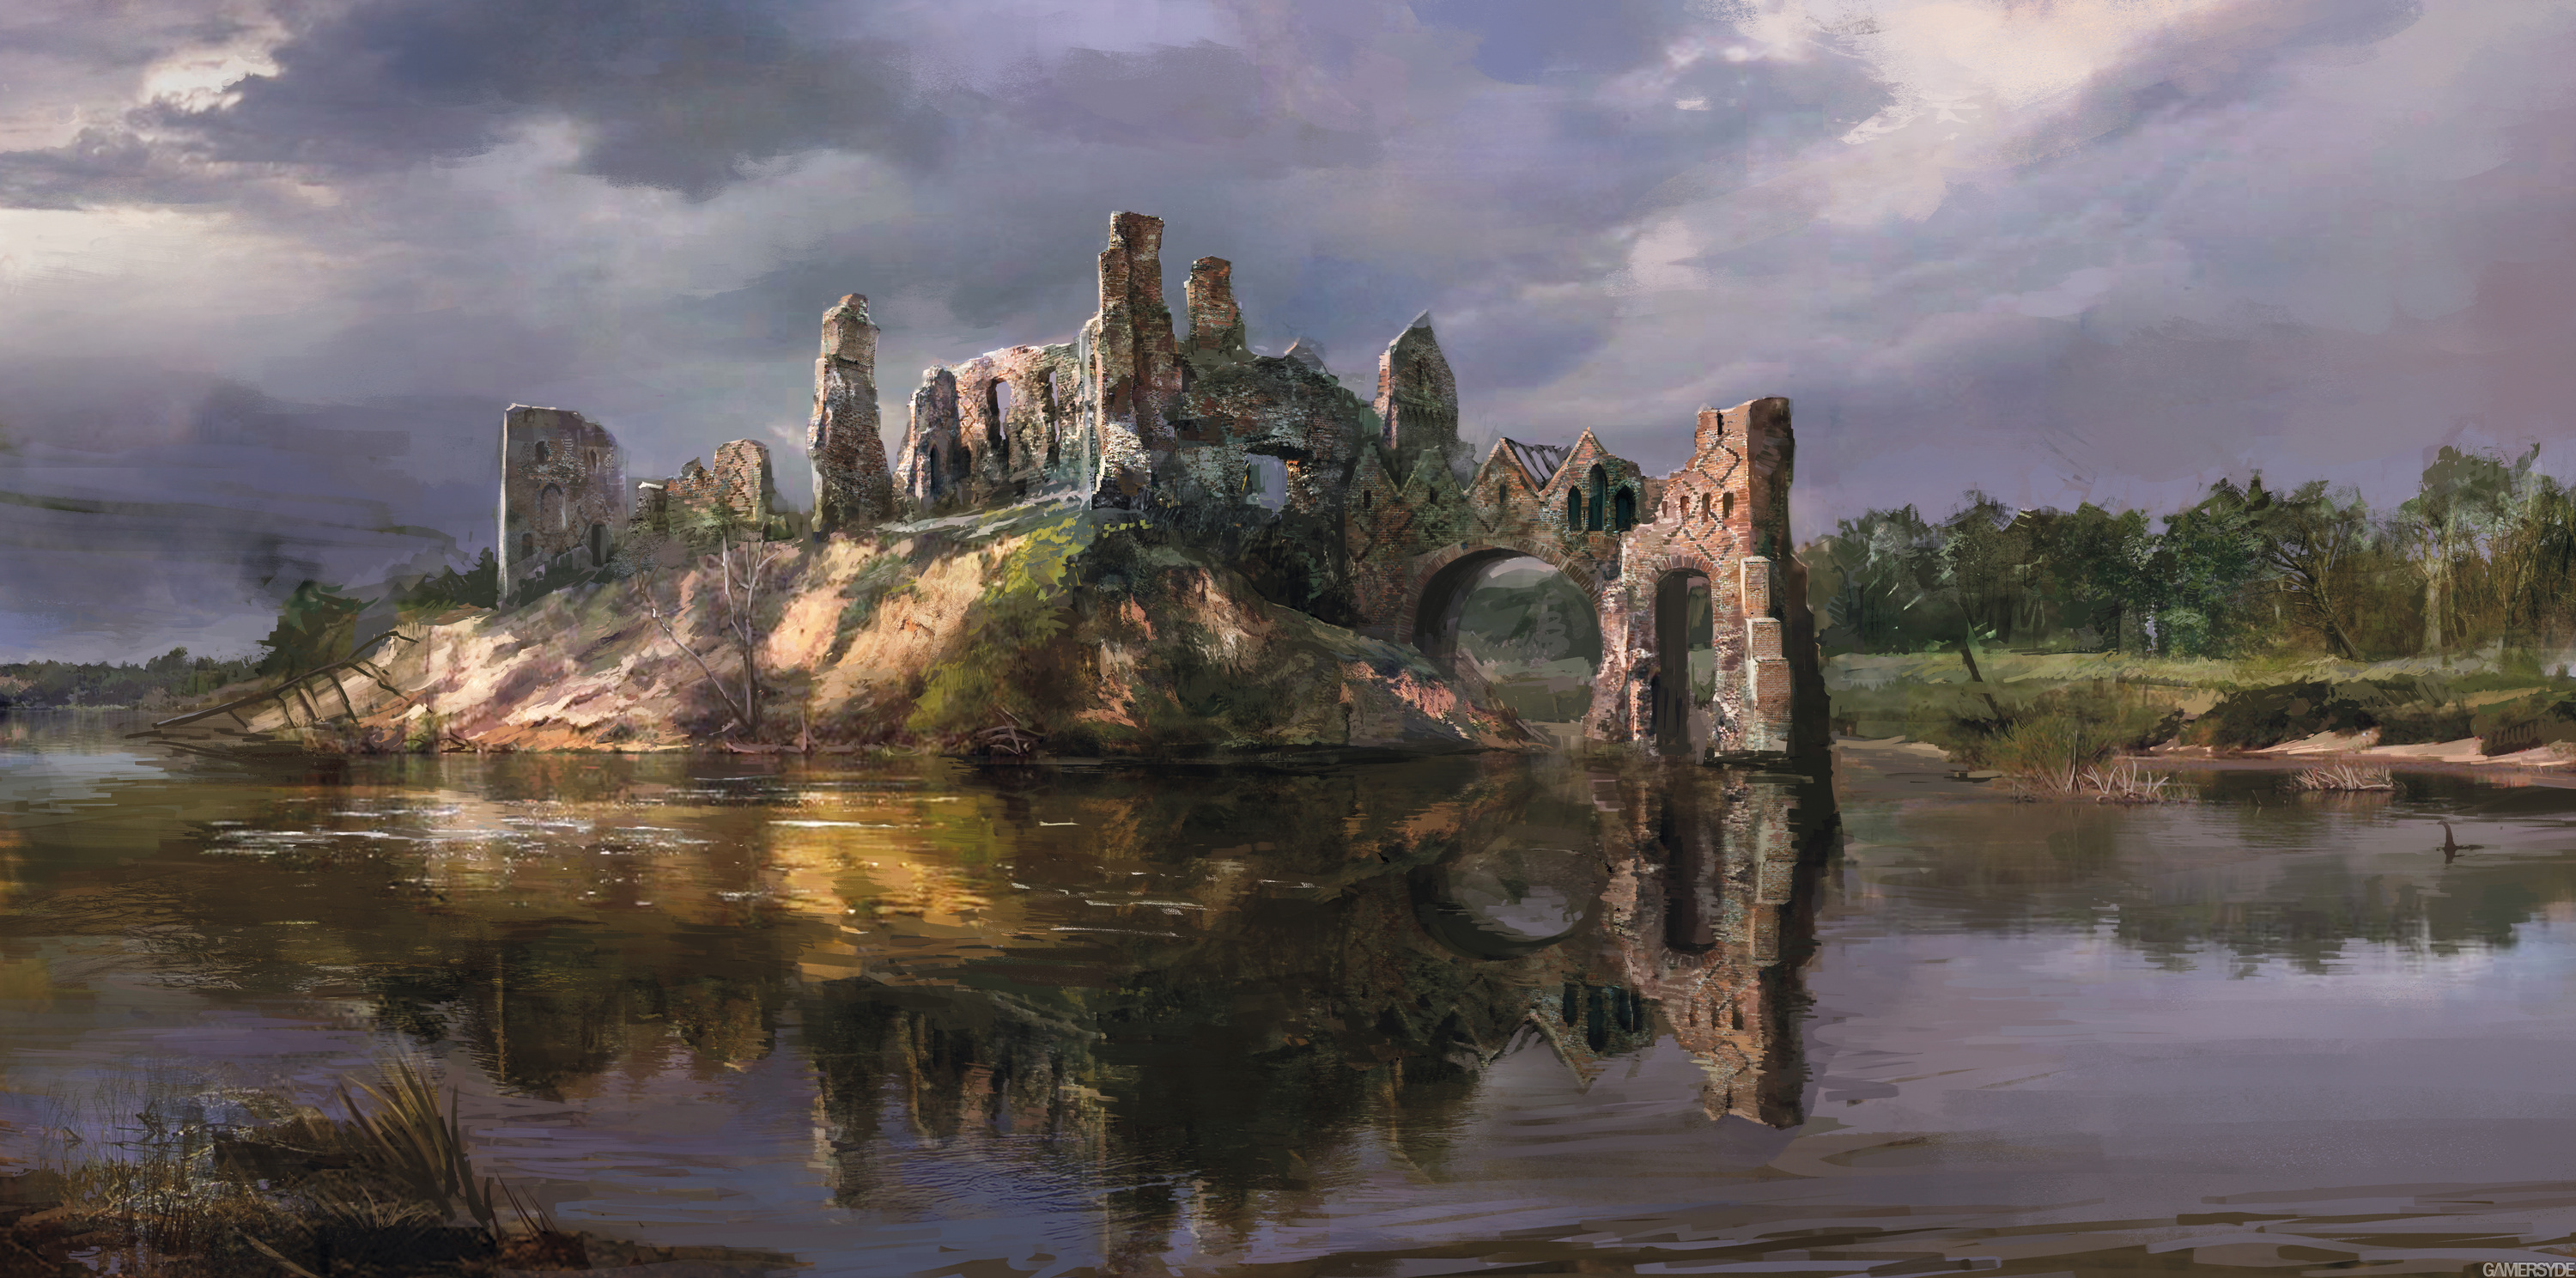 image_the_witcher_3_wild_hunt-22933-2651